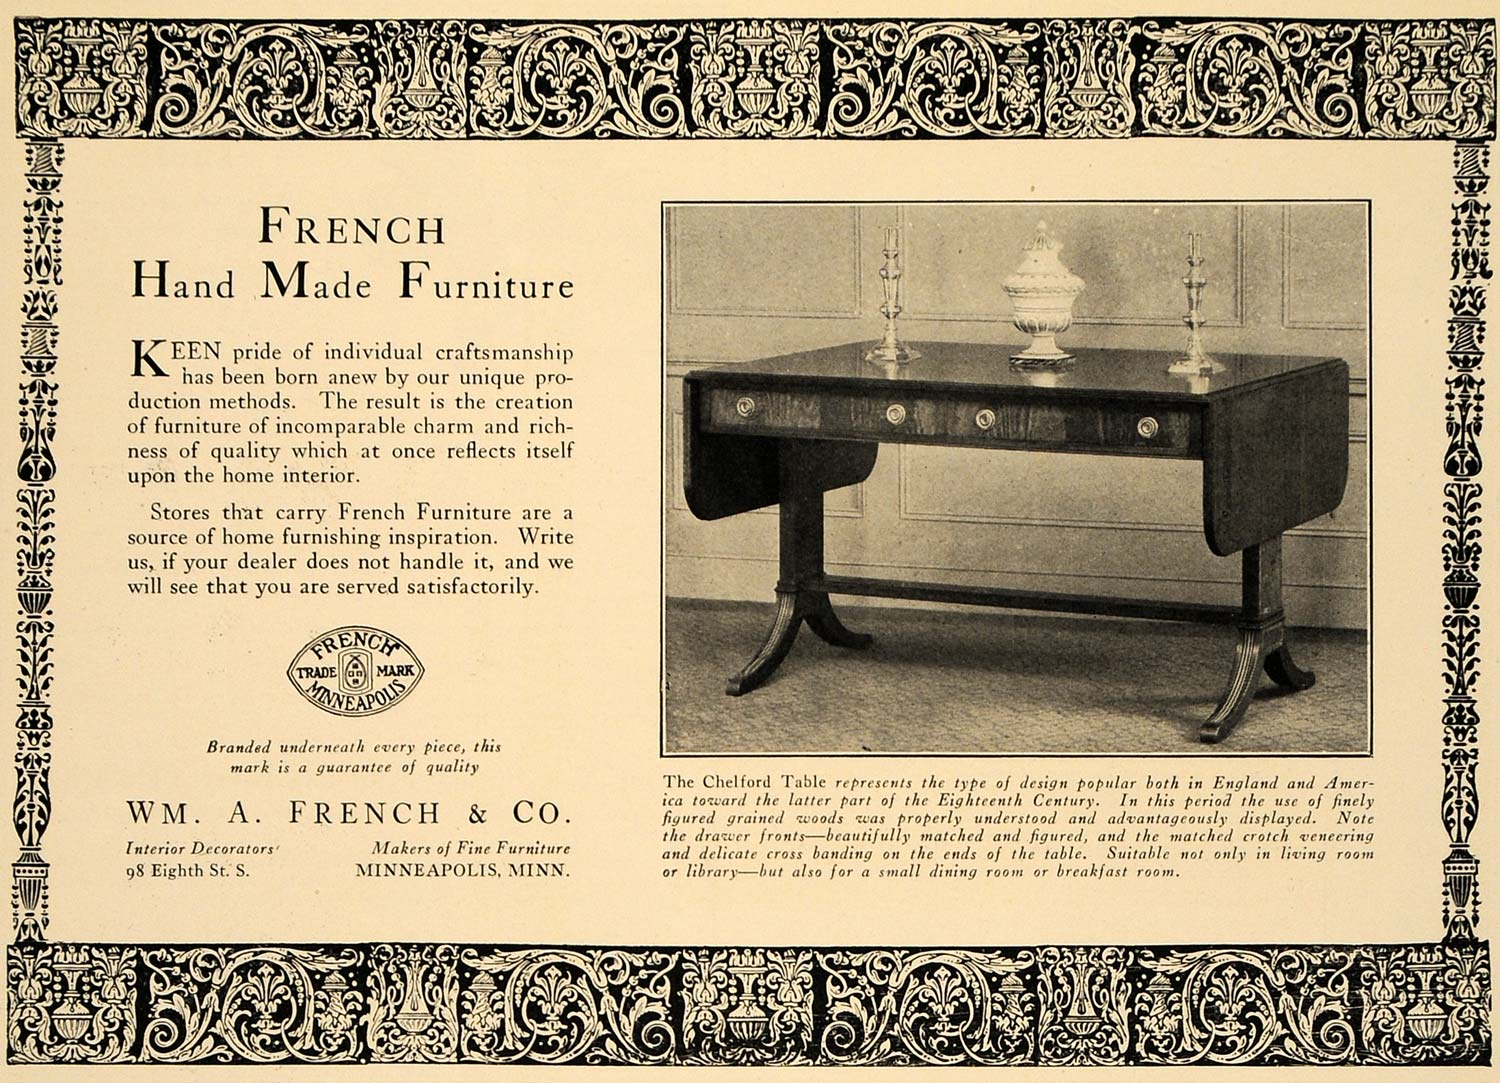 1925 Ad Wm A French Company Furniture Chelford Table - ORIGINAL ADVERTISING  CL7